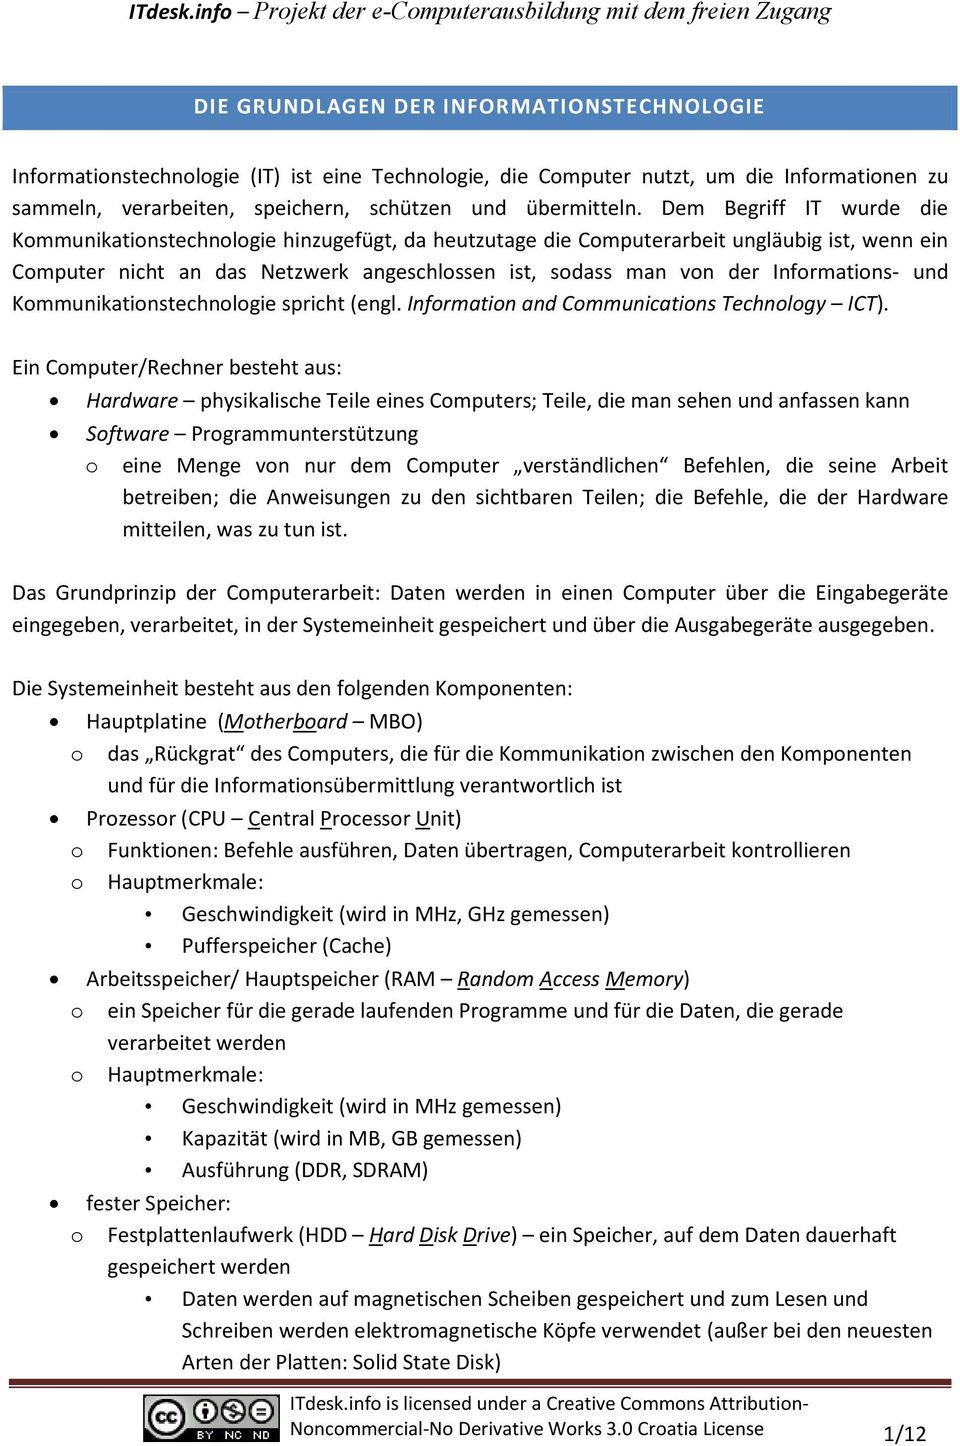 Informations- und Kommunikationstechnologie spricht (engl. Information and Communications Technology ICT).